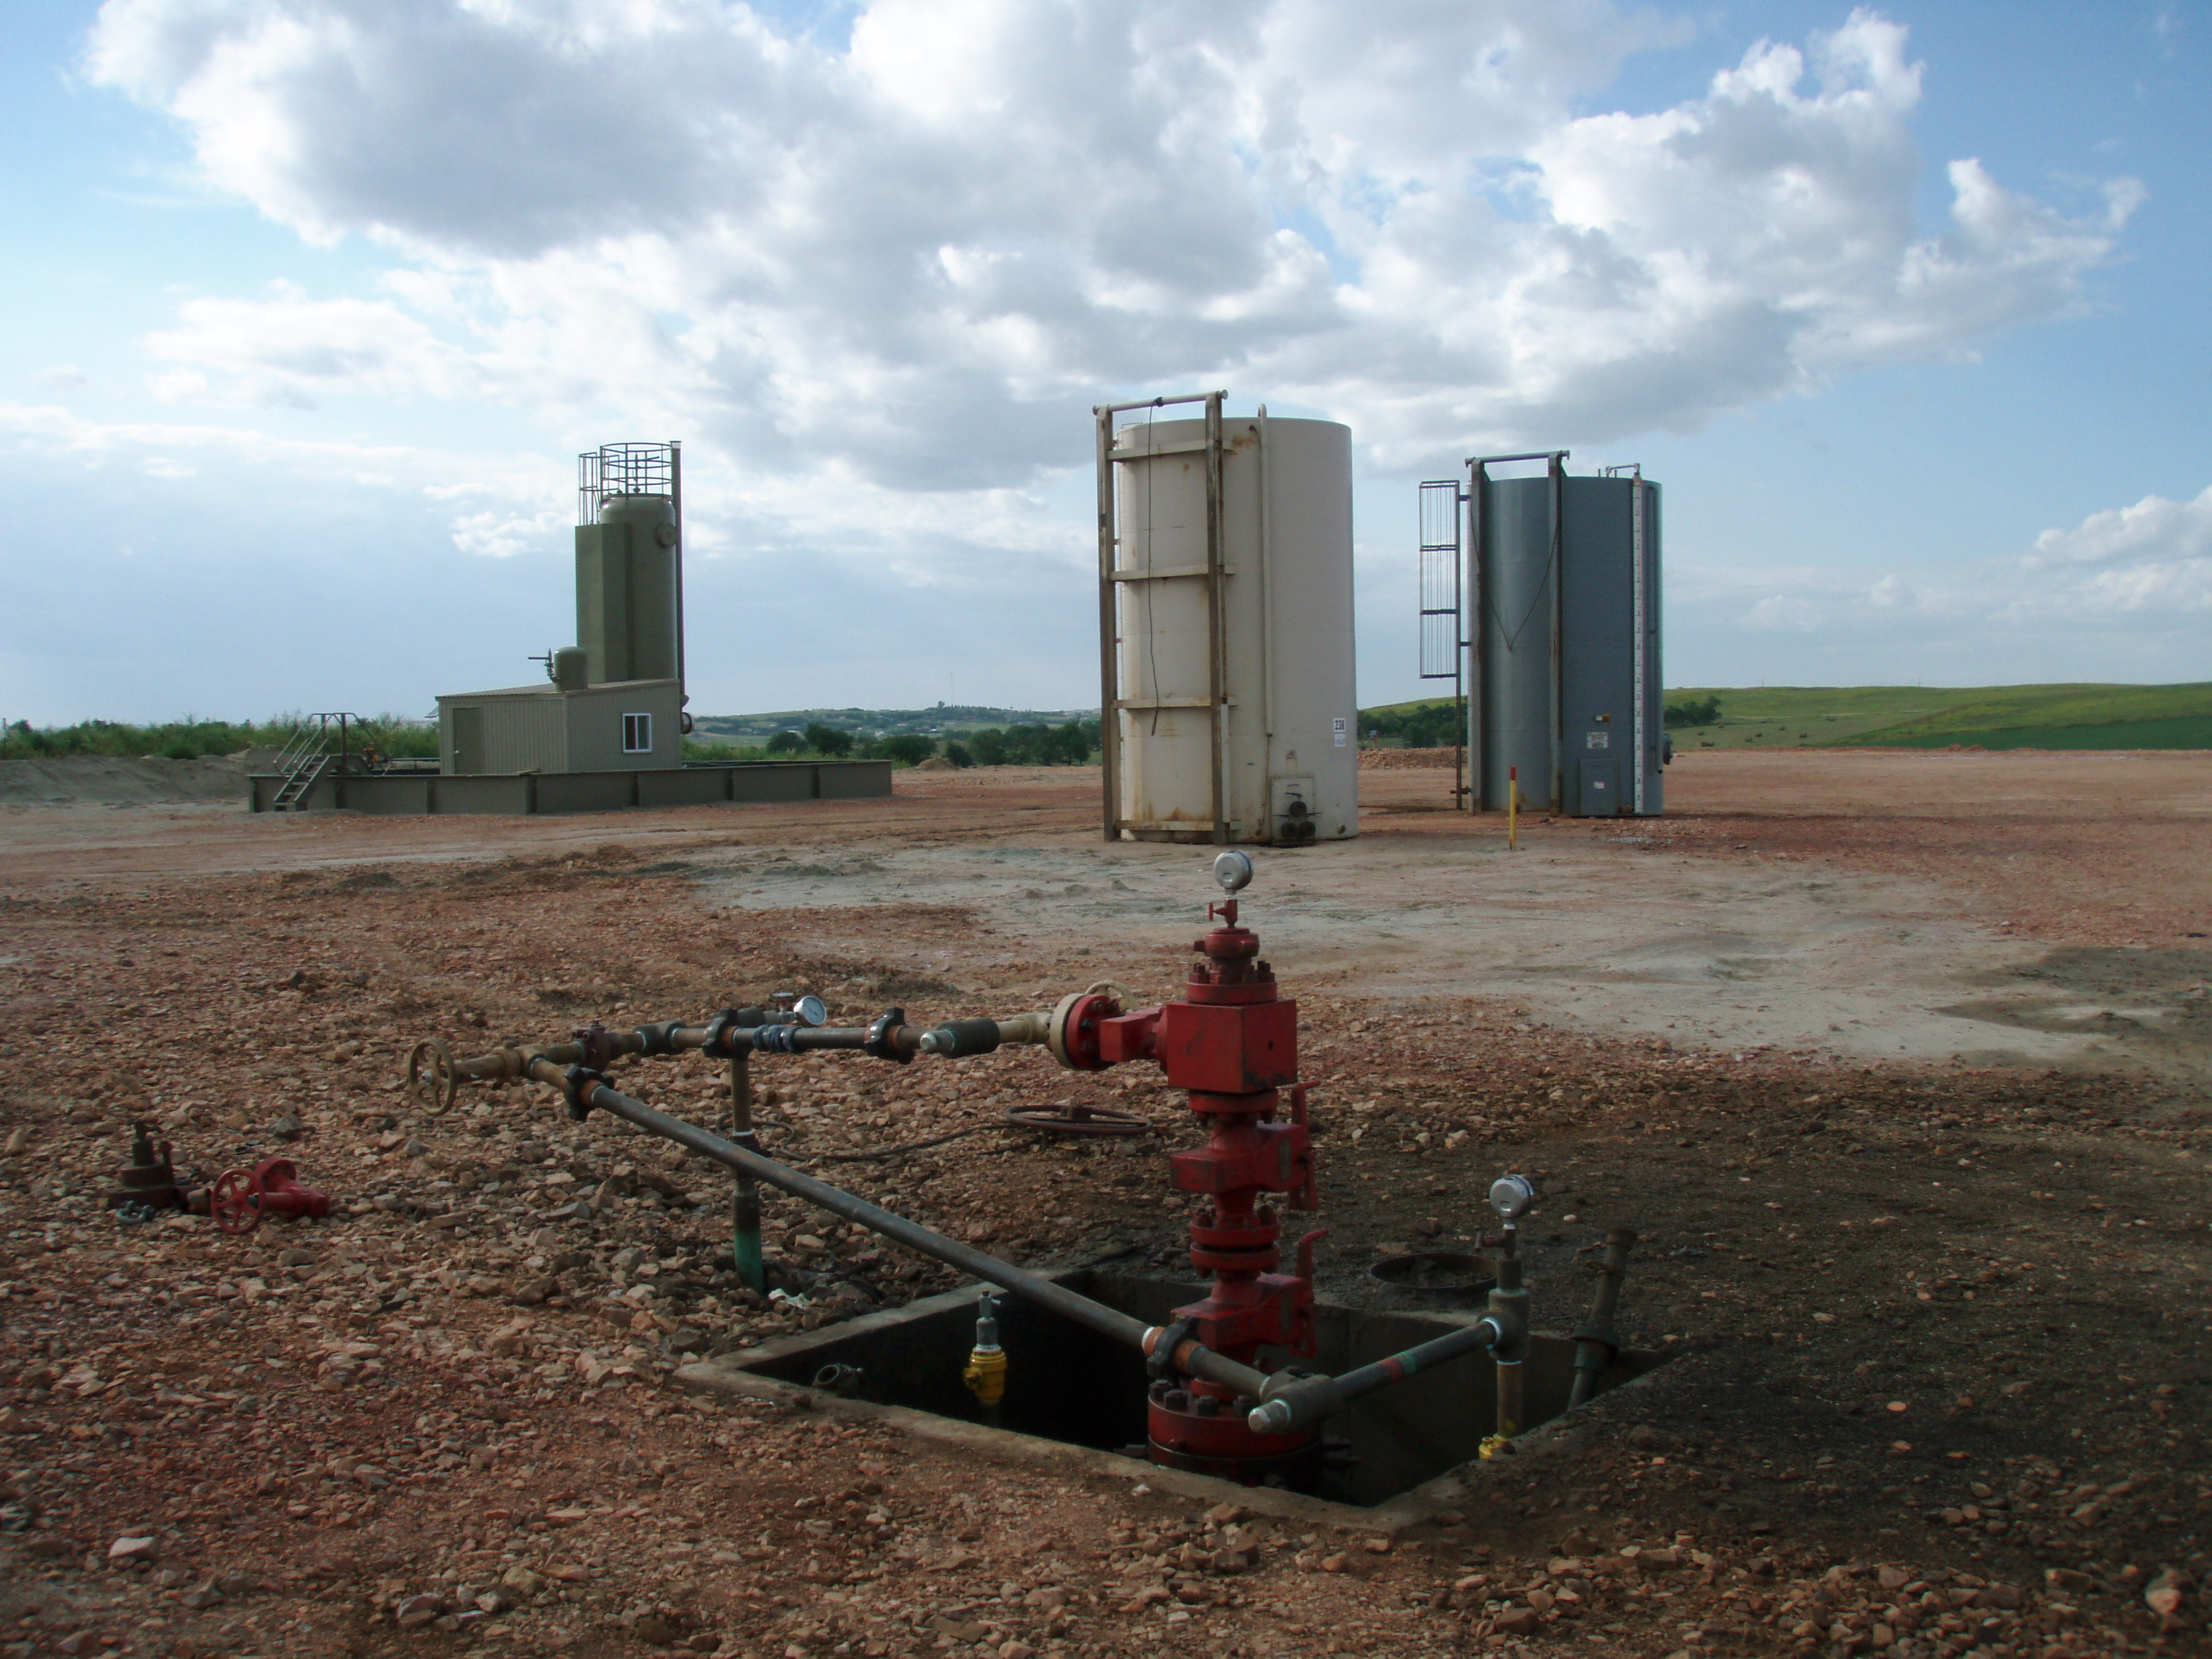 Image: Earthquakes in Oklahoma are manmade, strongly linked to fracking wastewater injection: Study